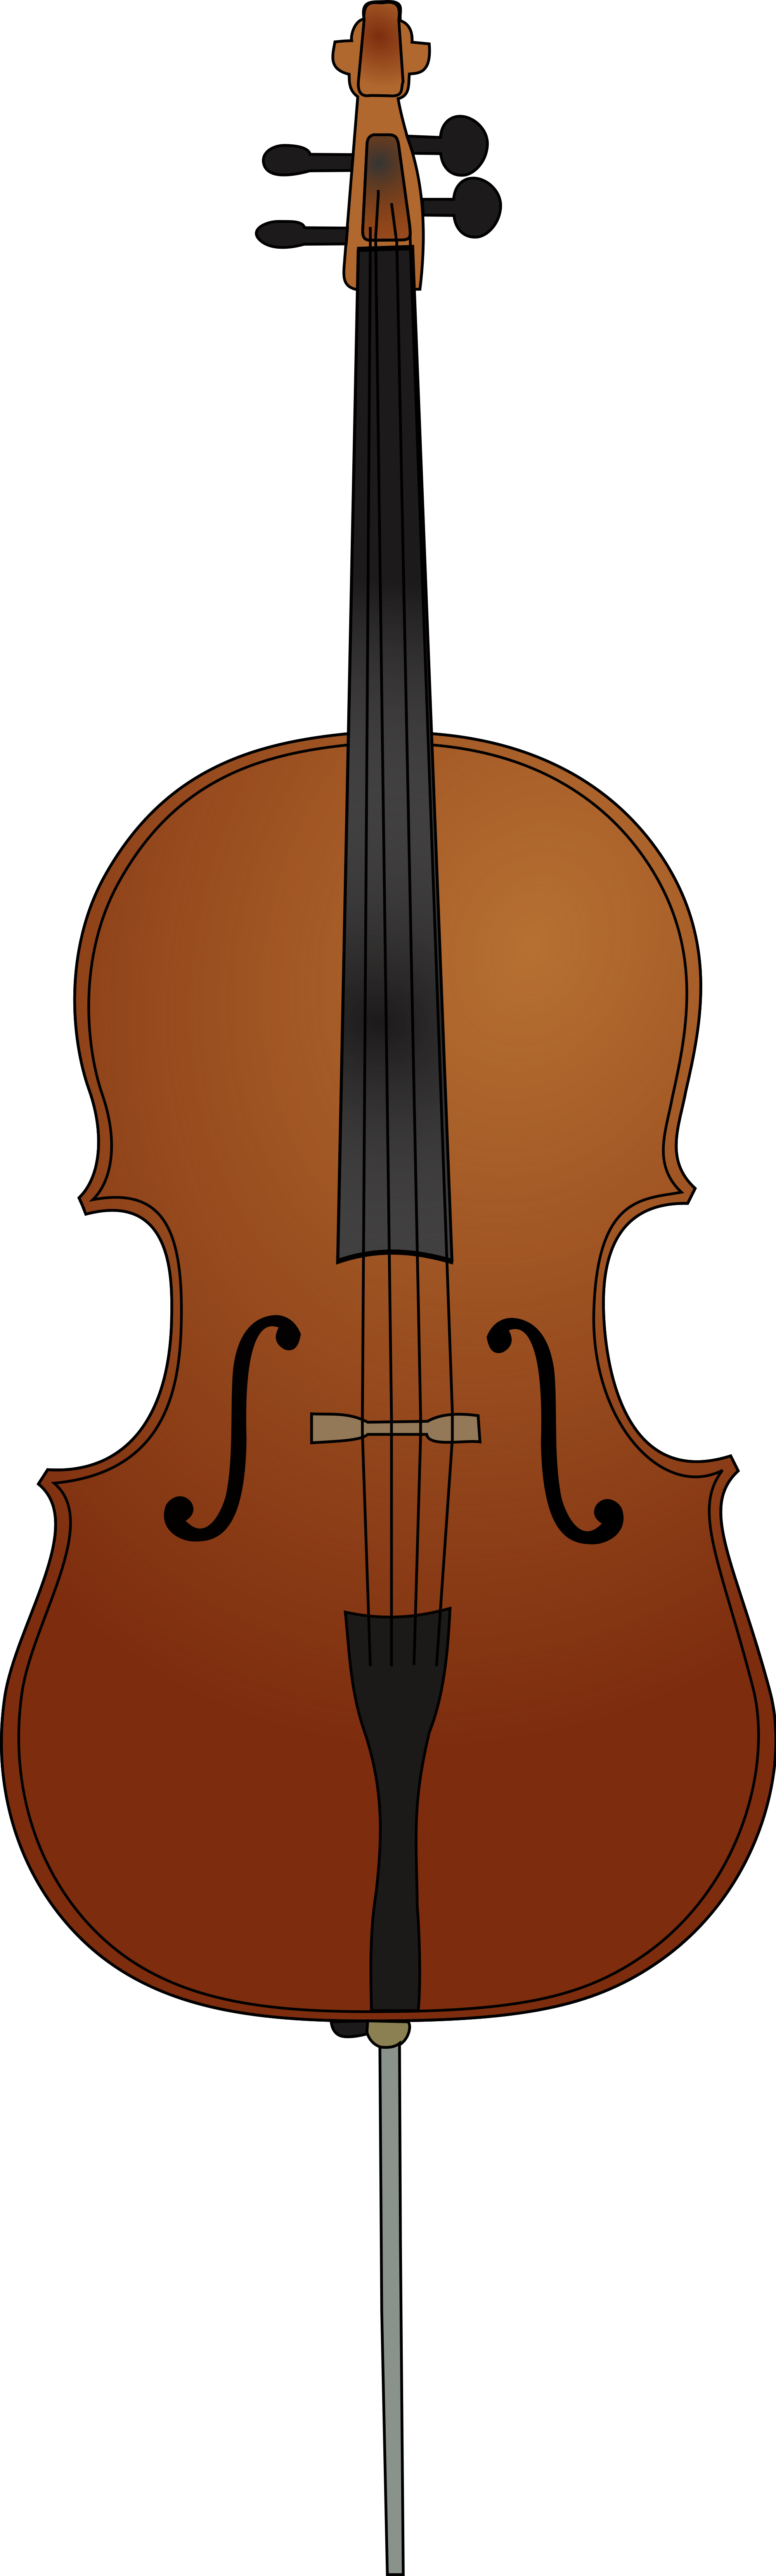 Cello Transparent Png Clipart Free Download Ywd